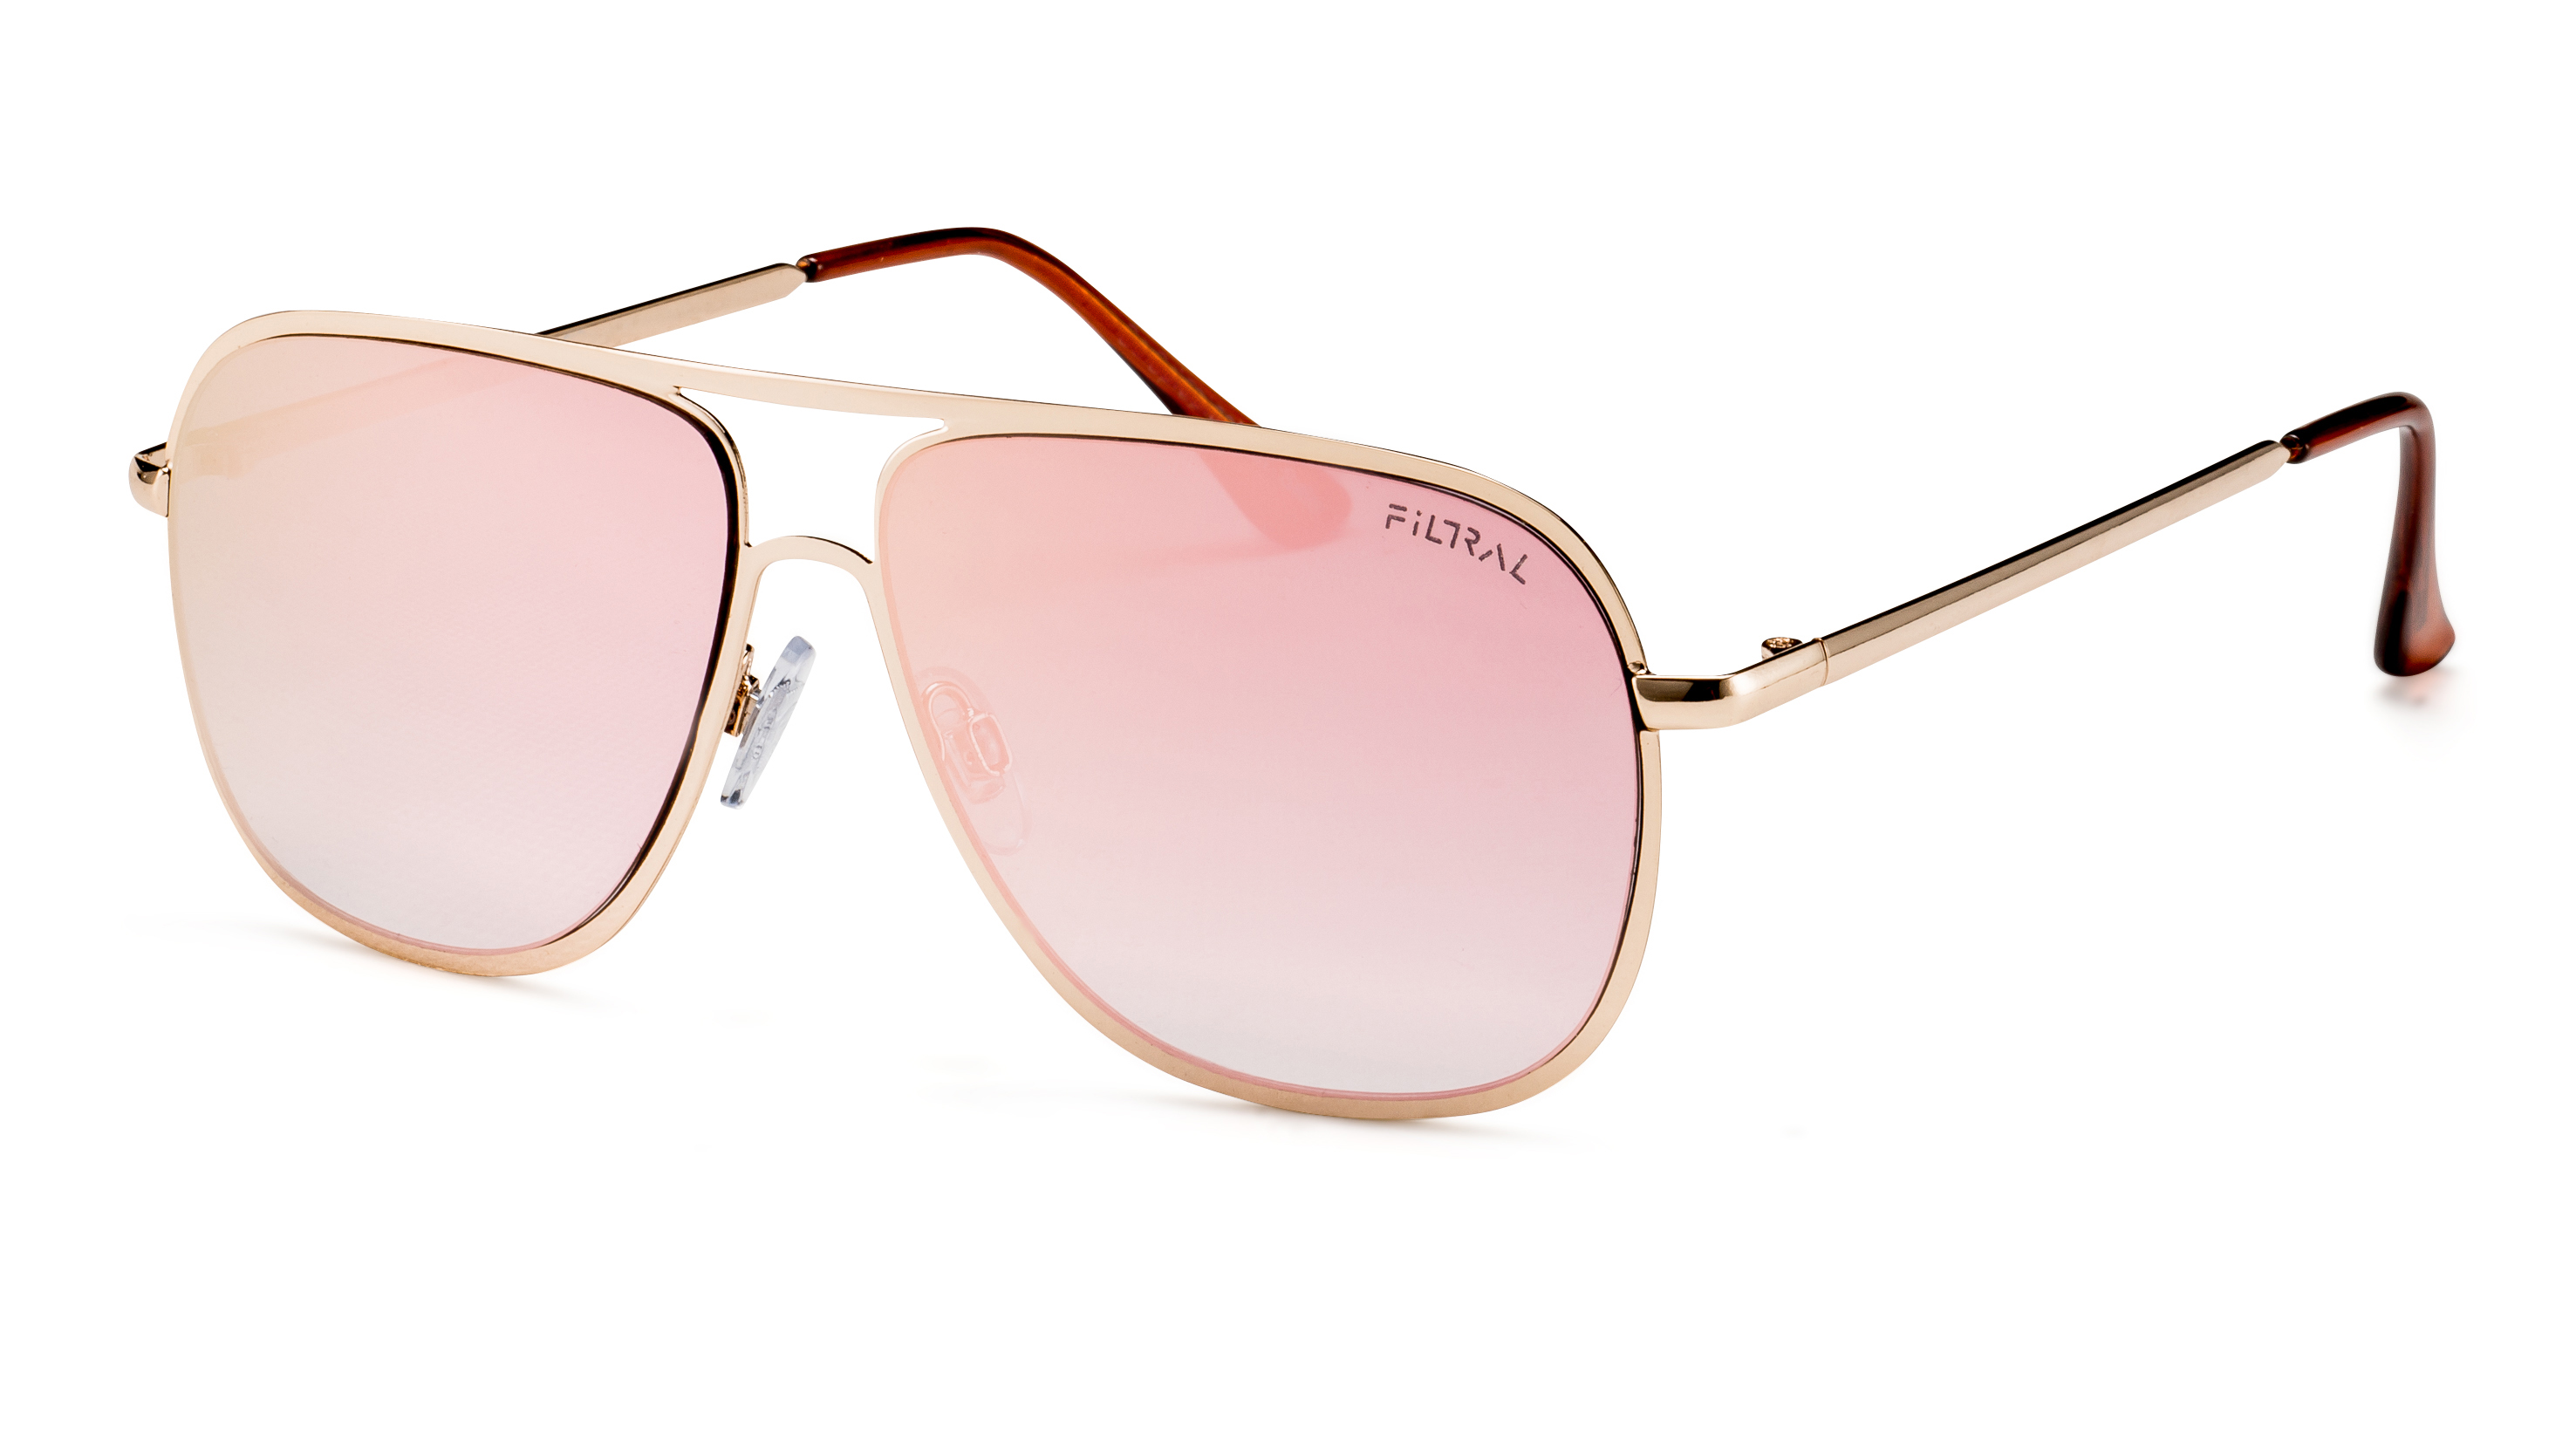 Main view sunglasses 3001029